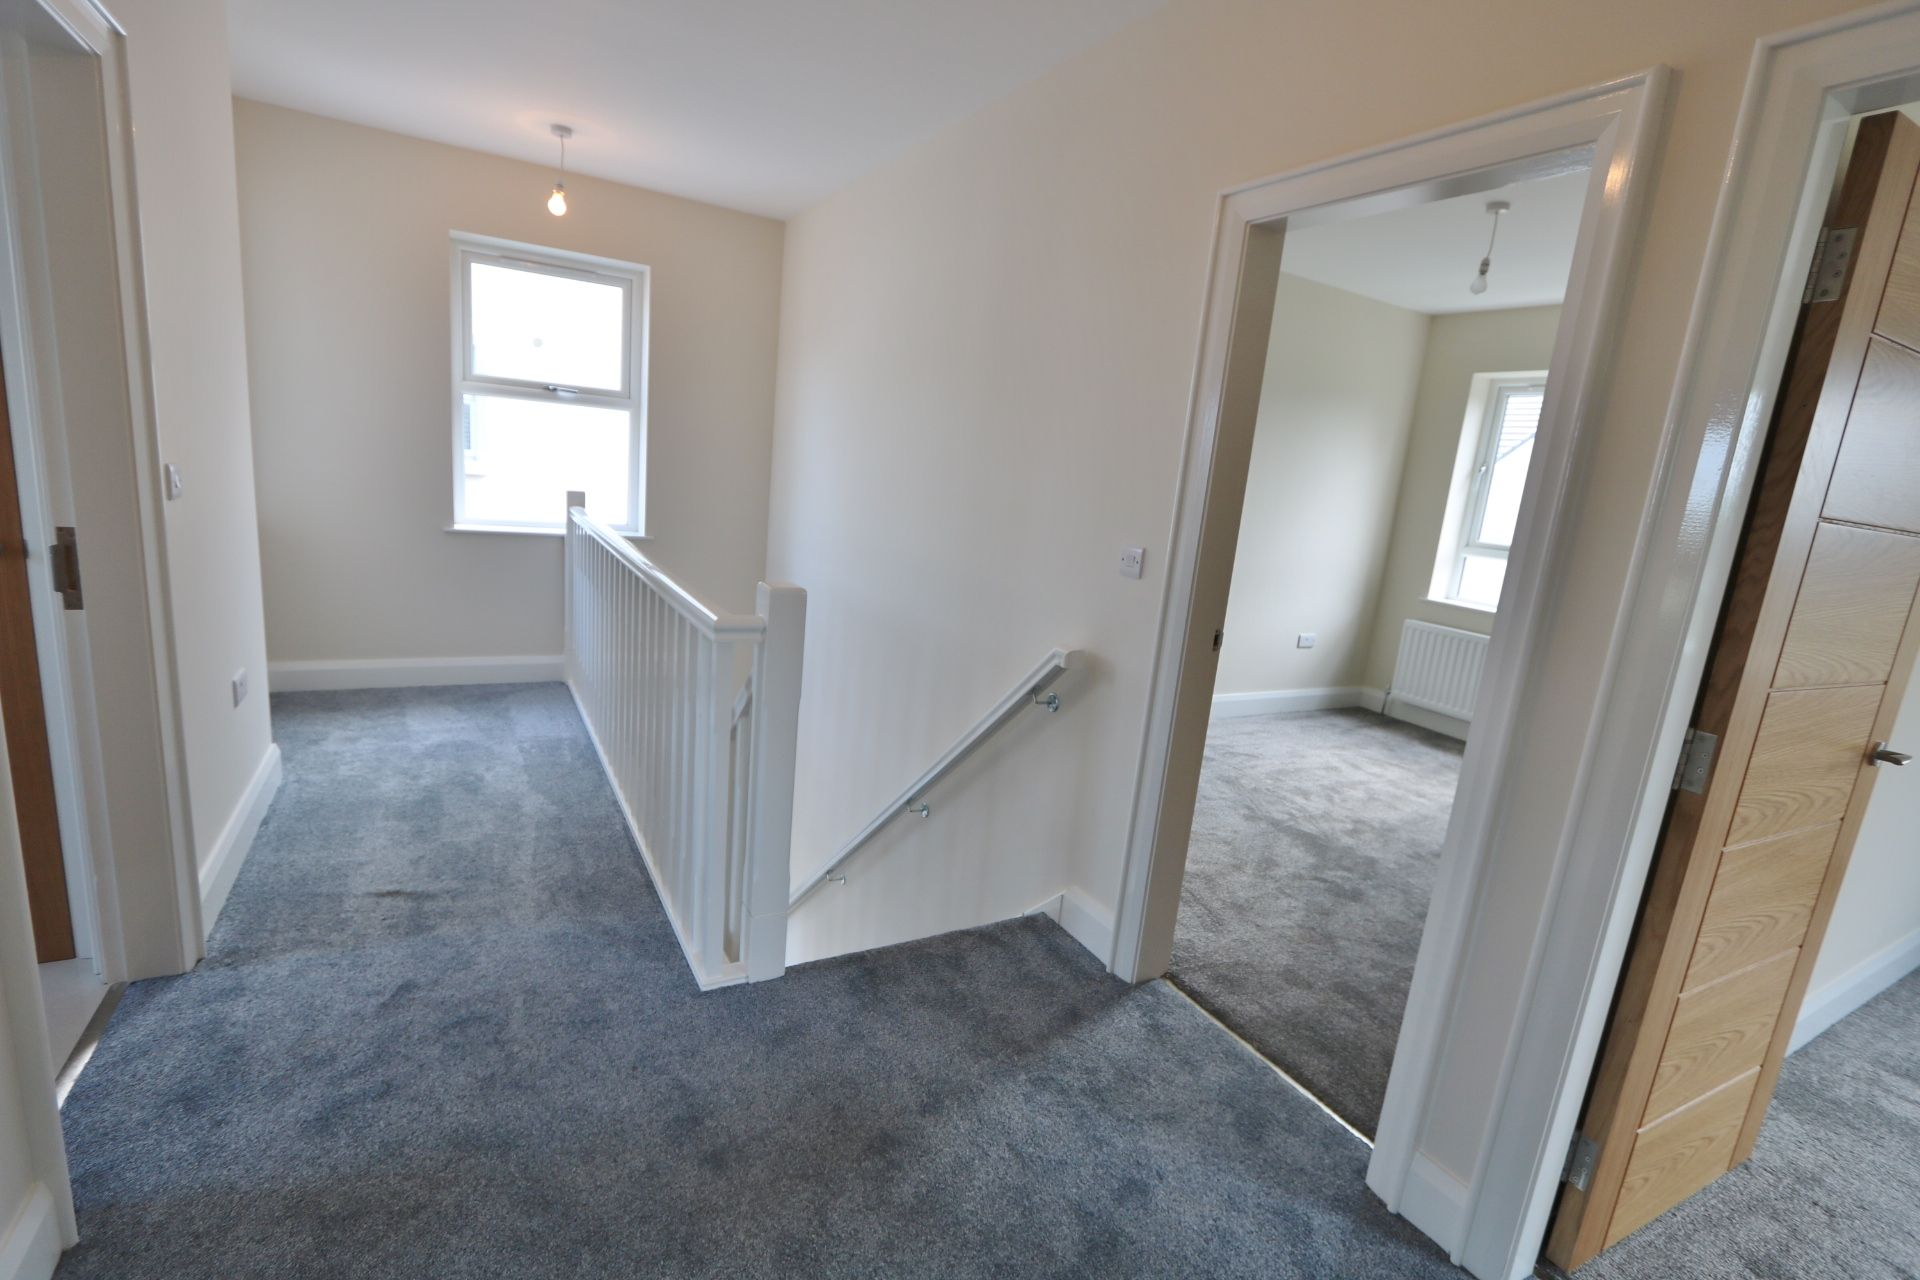 3 bedroom detached house For Sale in Milltown - Photograph 10